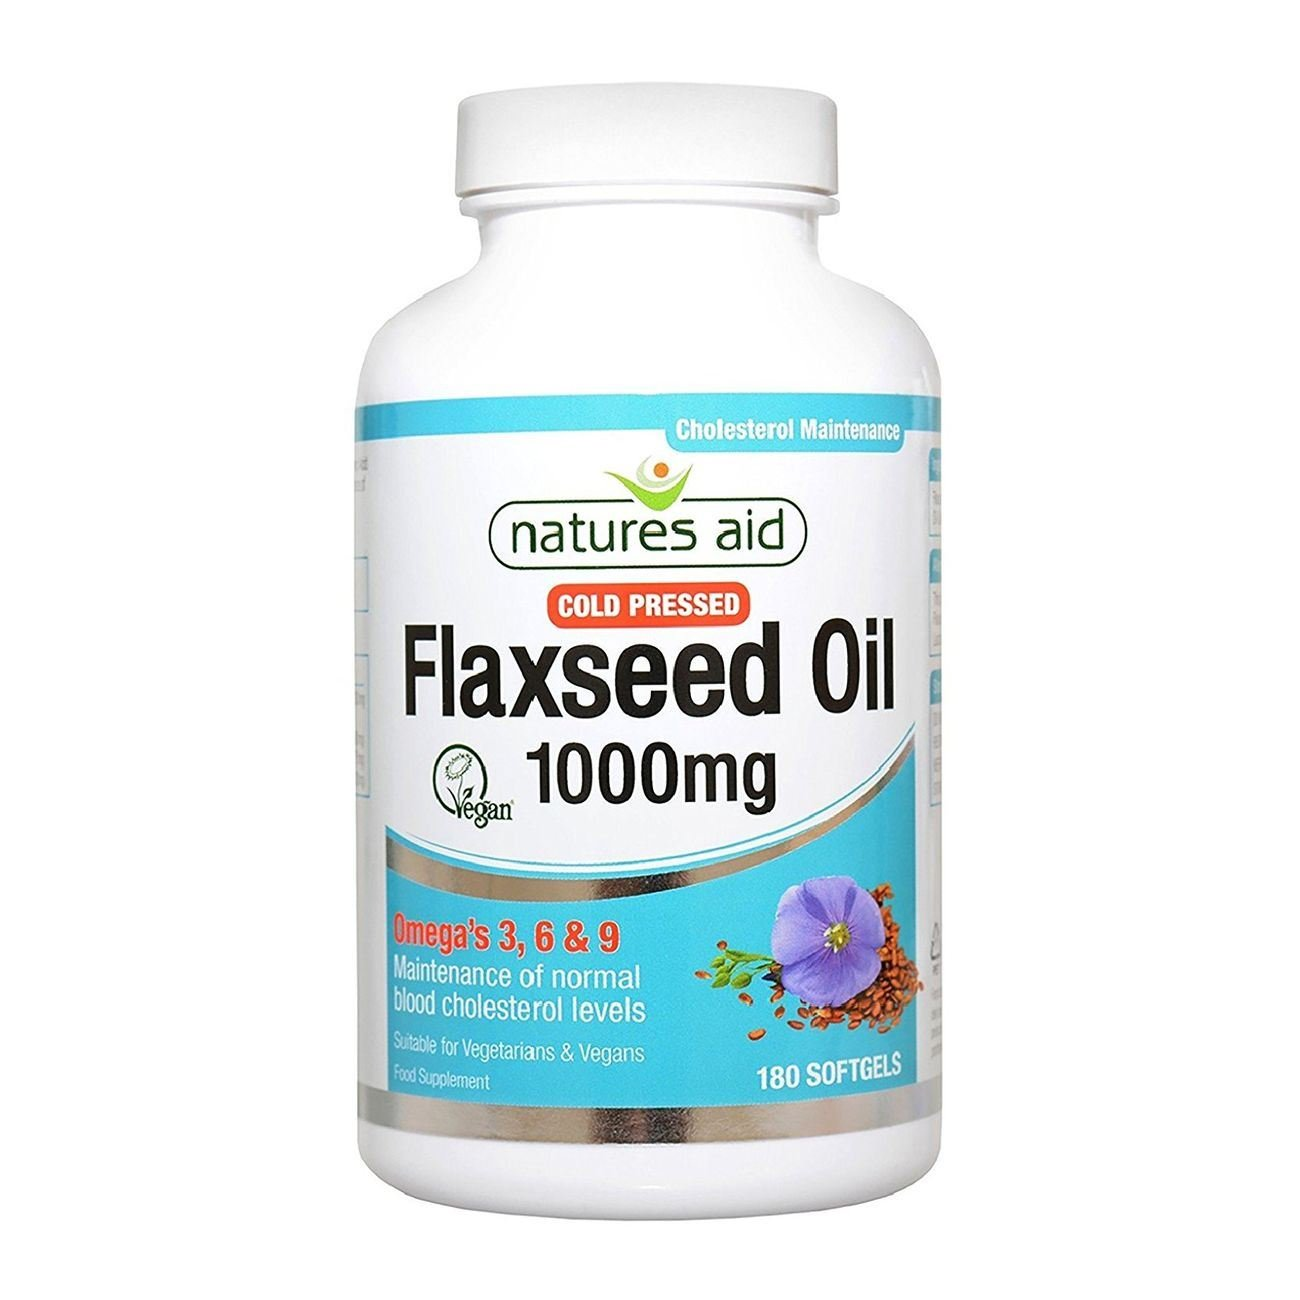 Natures Aid Flaxseed Oil 1000mg Cold Pressed (Omega 3, 6 + 9) 180 caps. Suitable for Vegetarians.